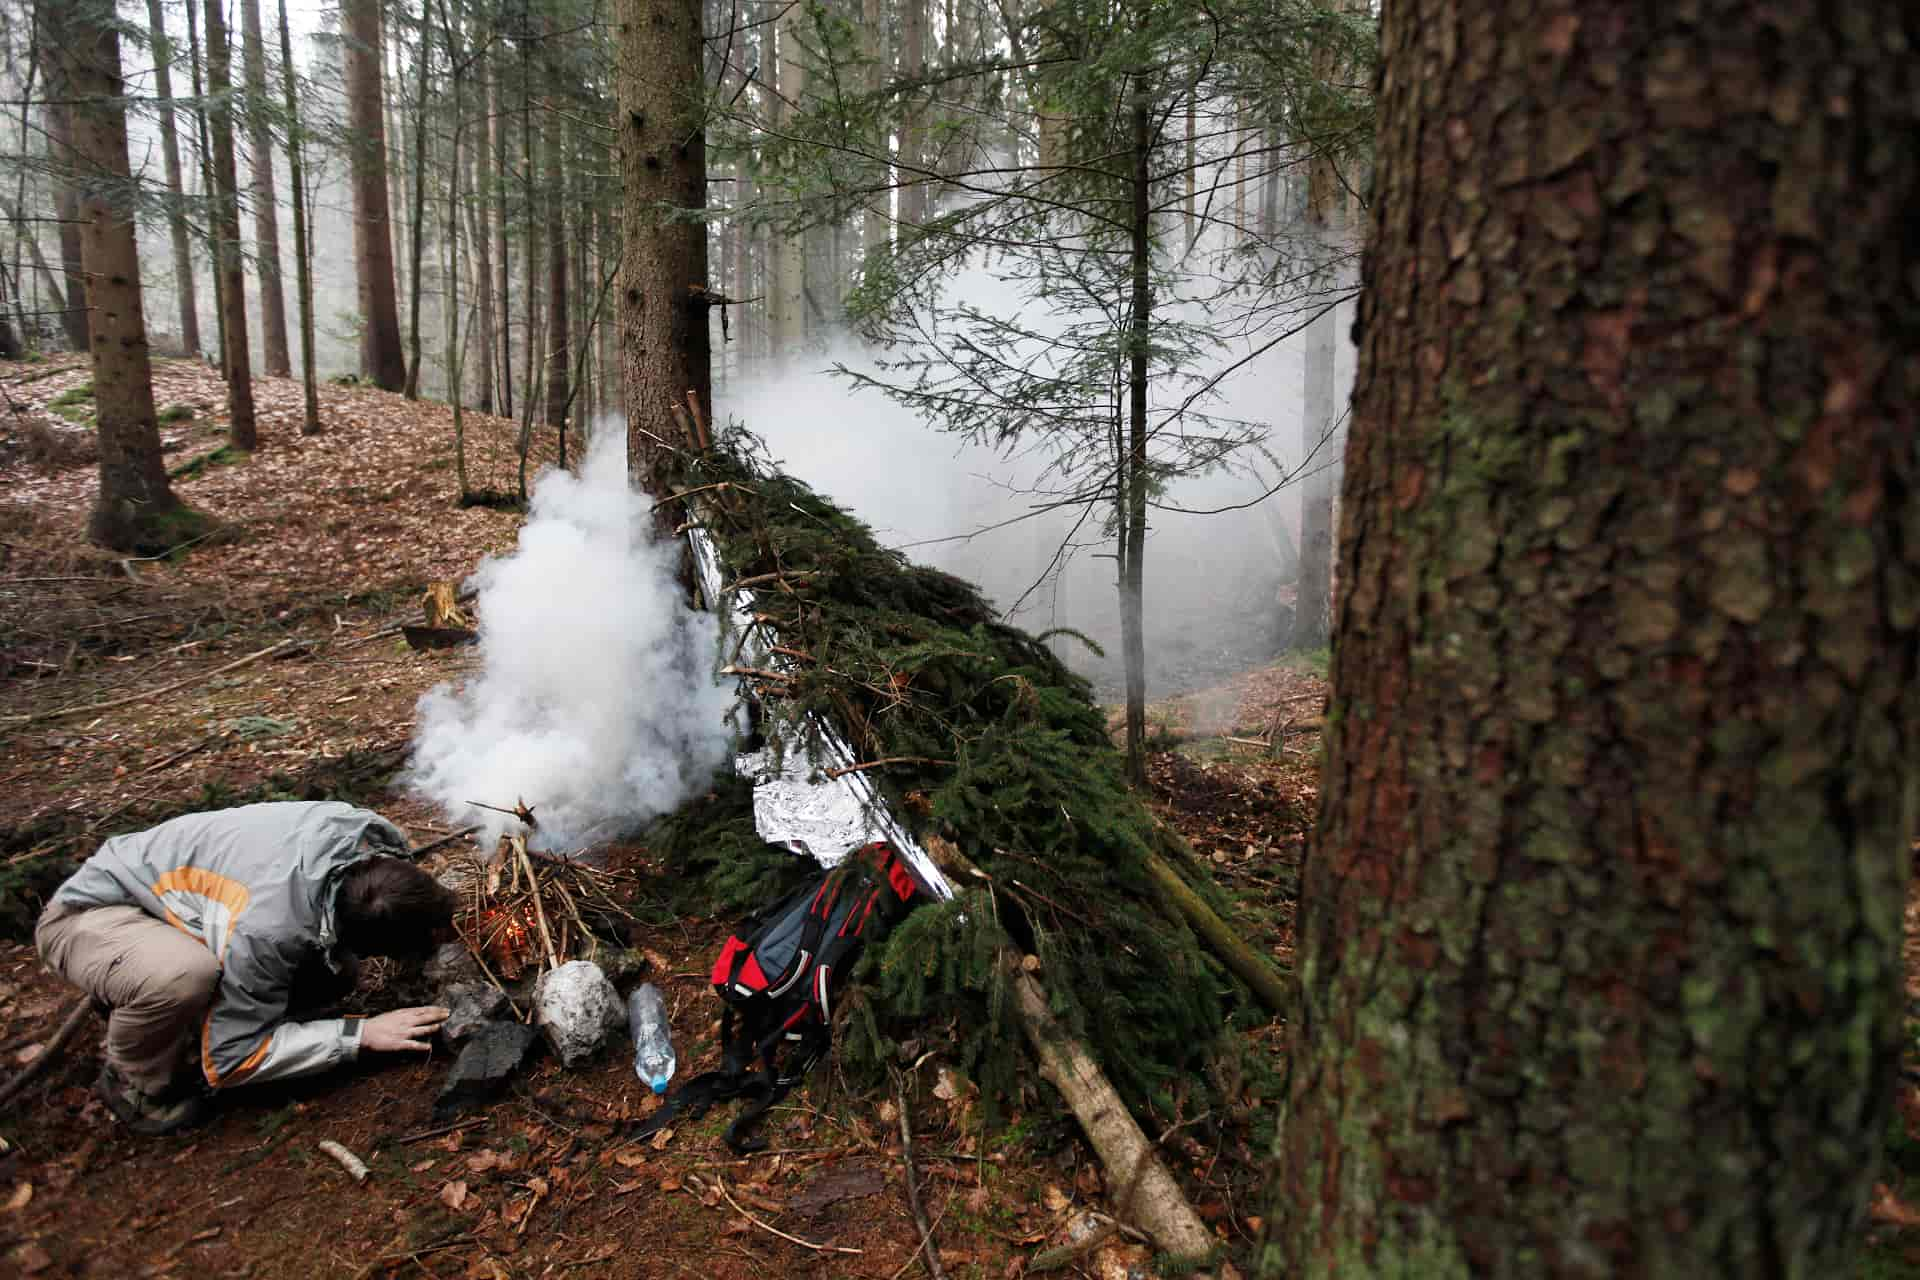 Man starting a fire near his survival lean to shelter